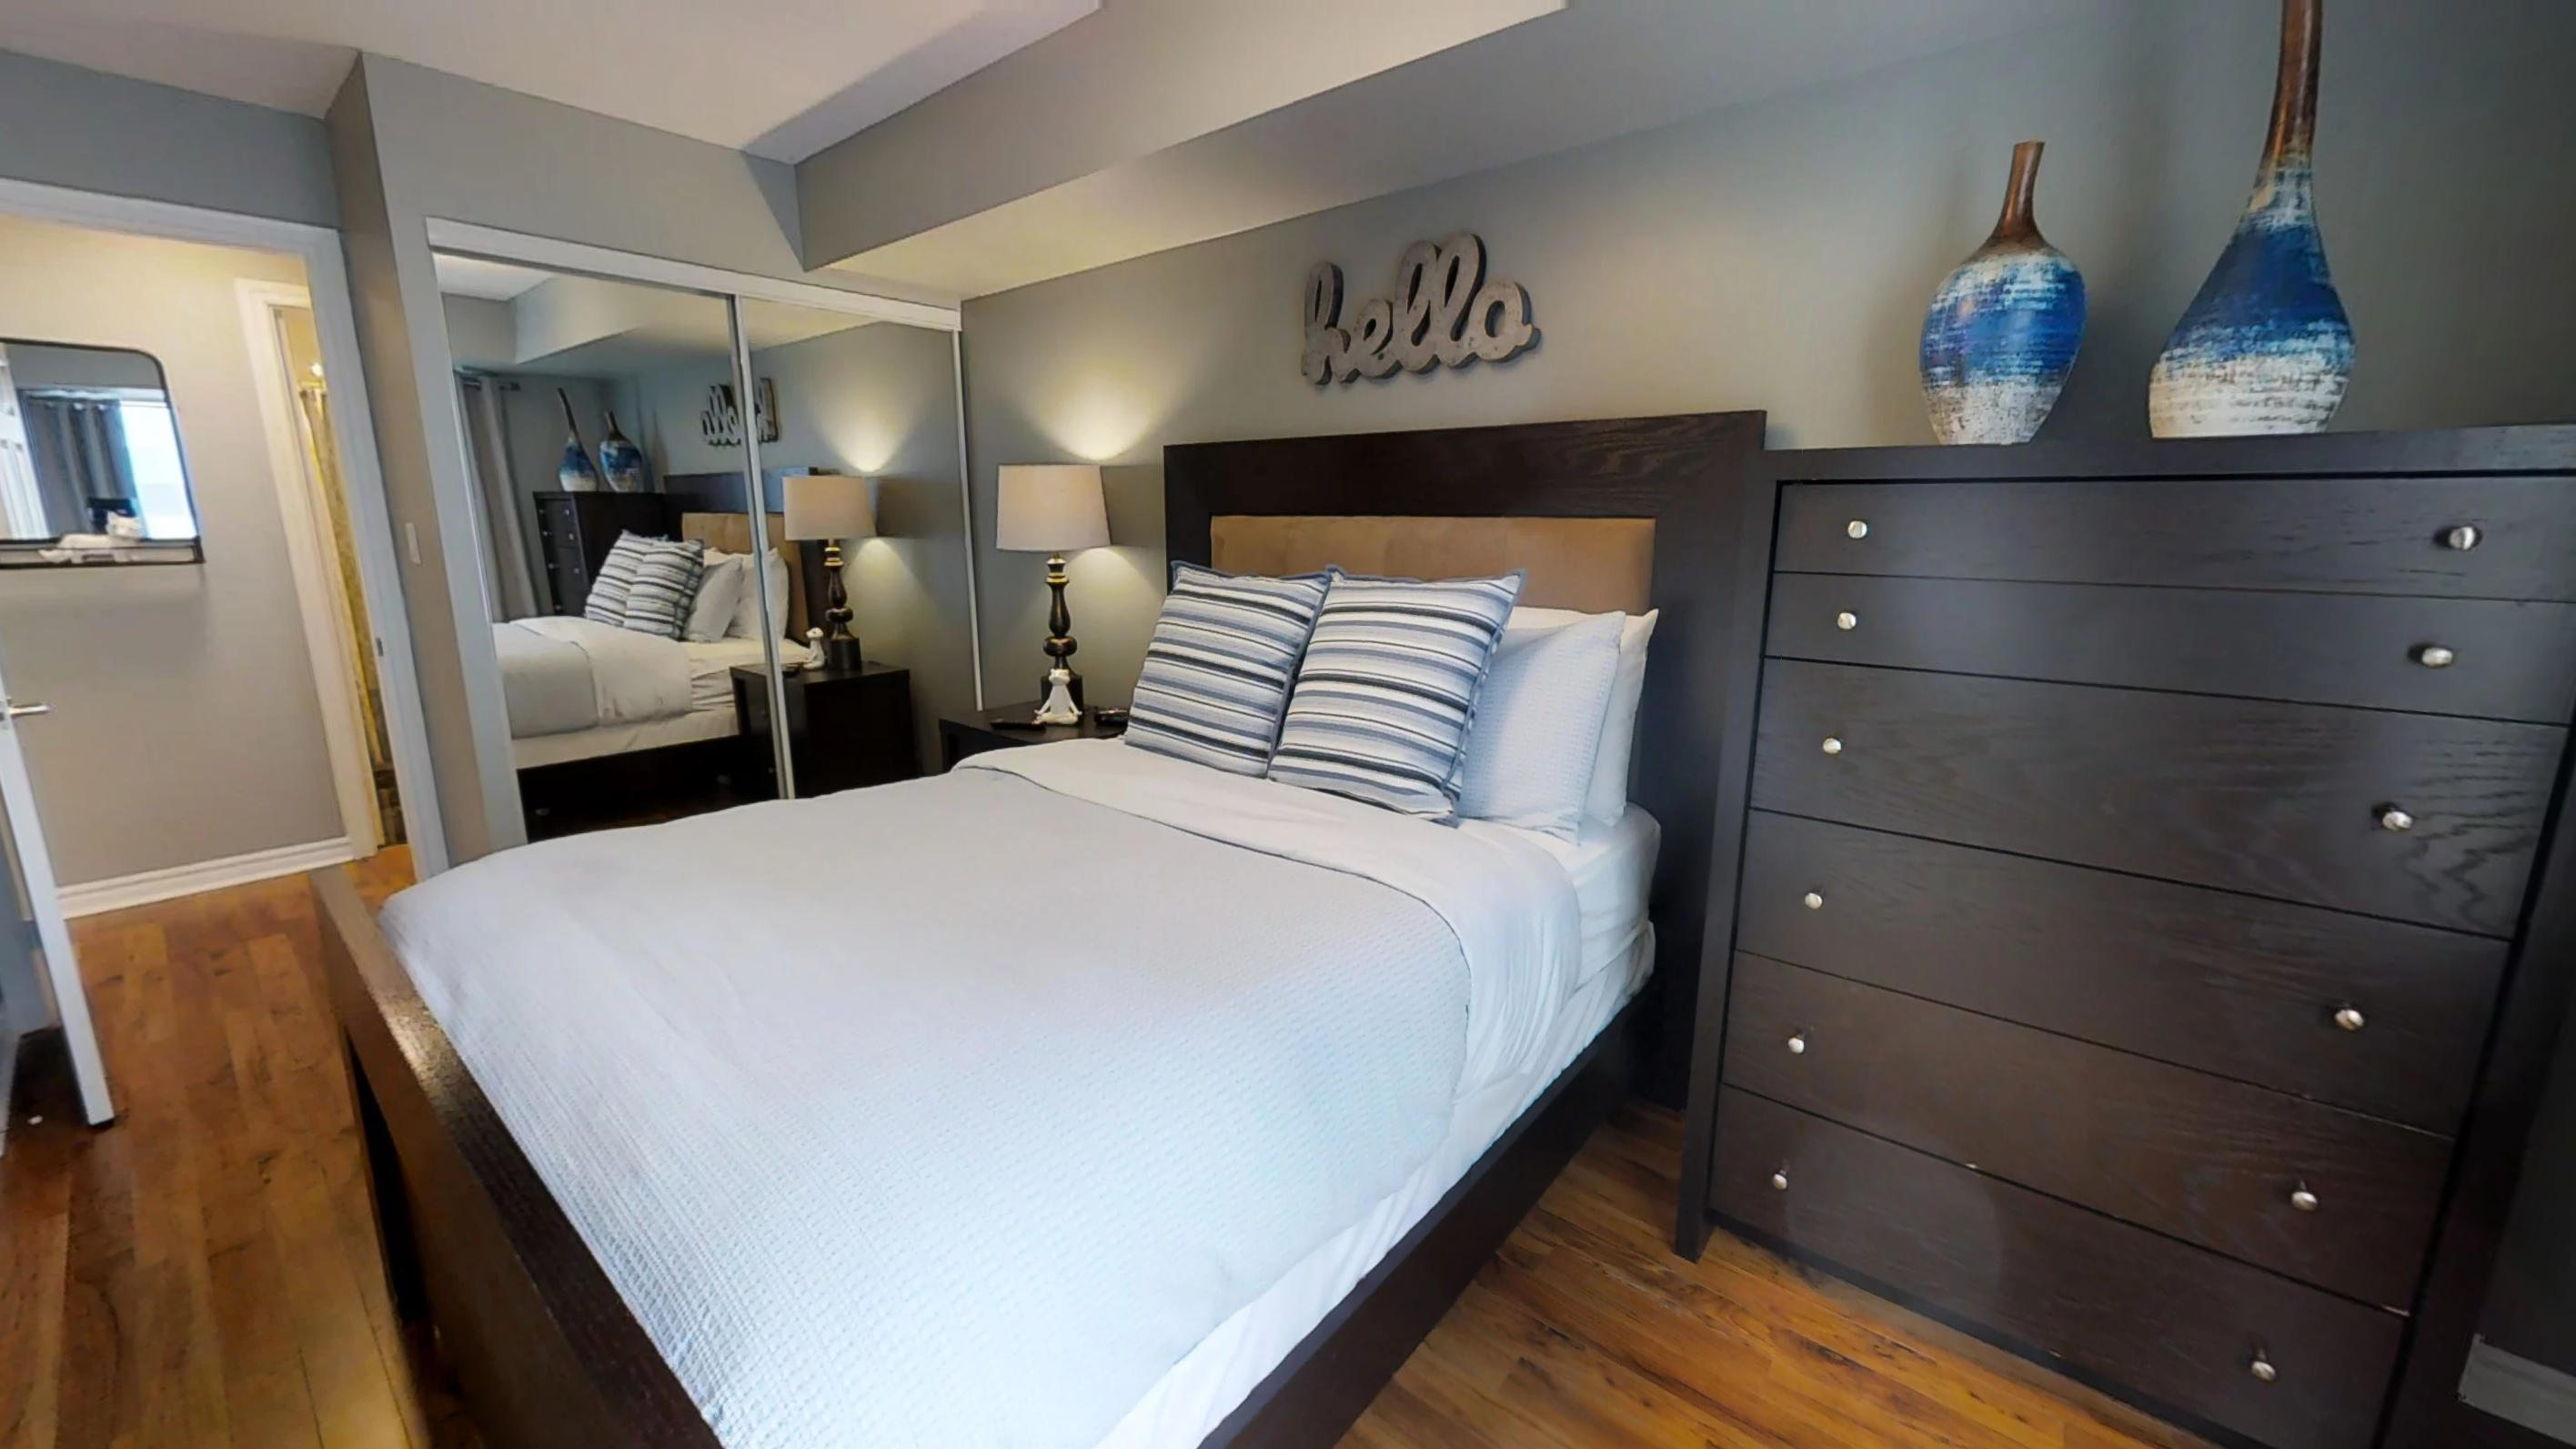 furnished bedroom in a corporate stay apartment located near Bay street in downtown Toronto